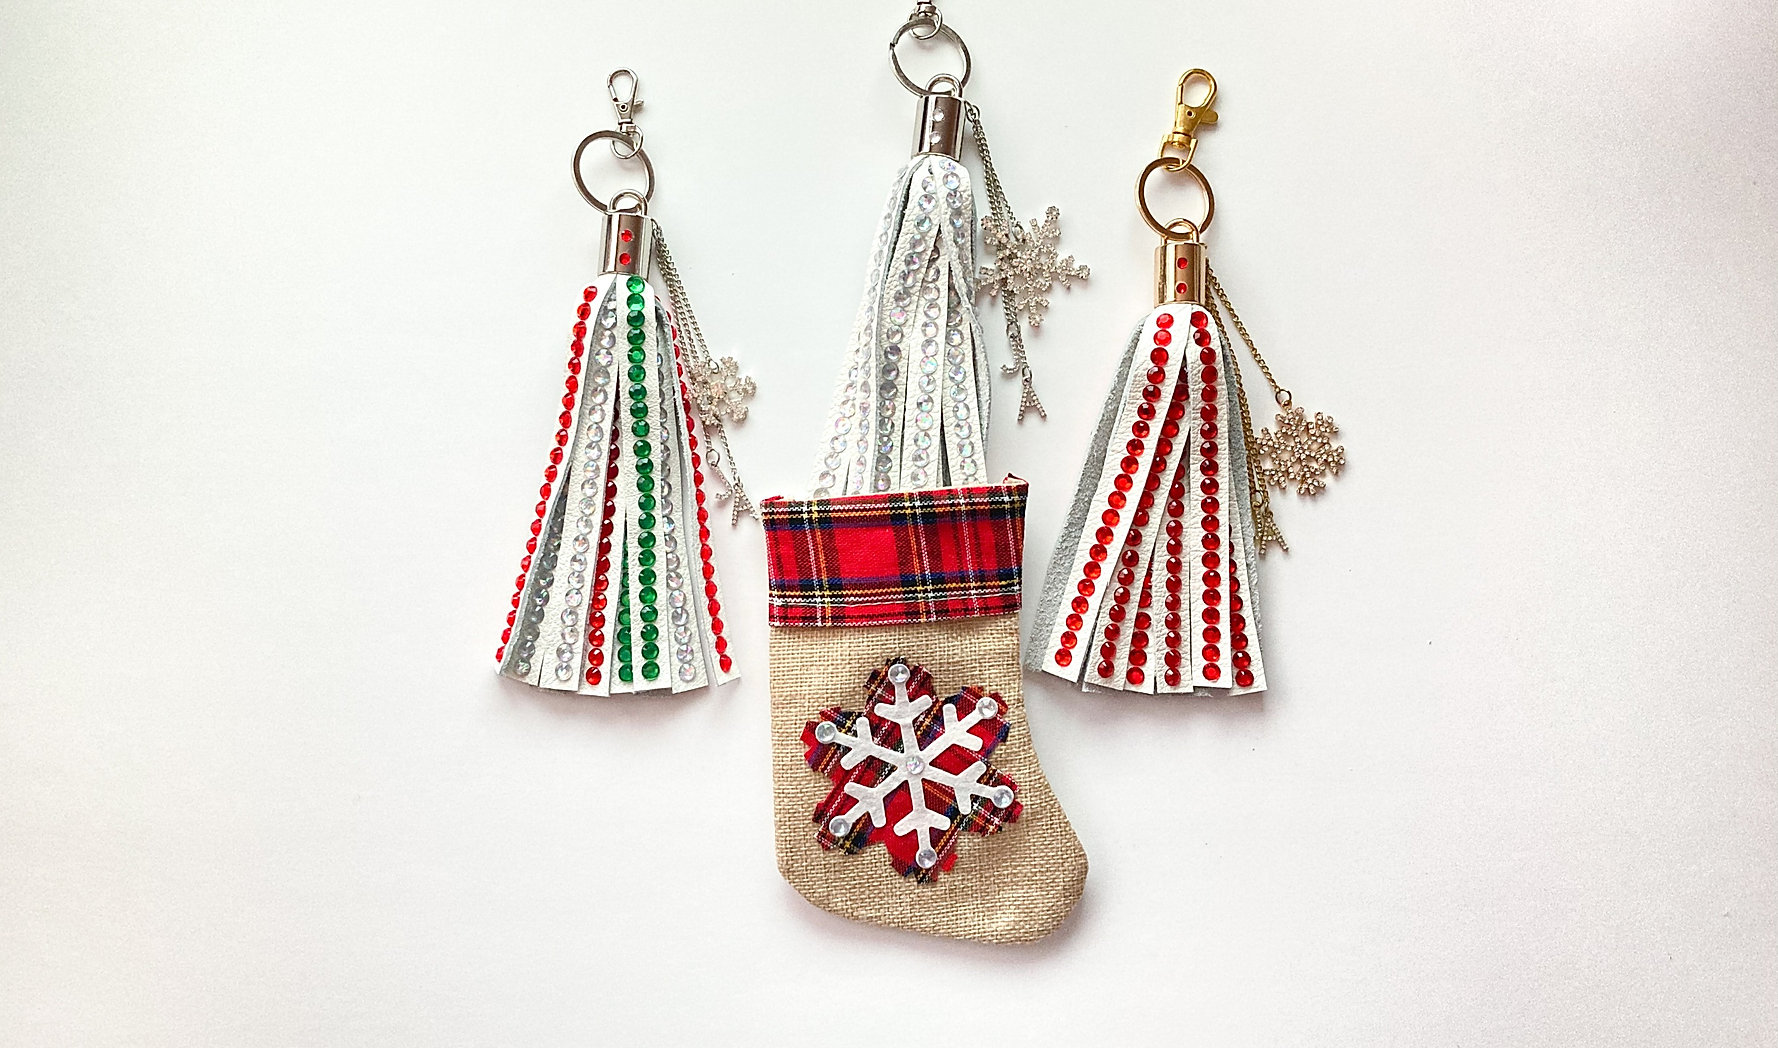 Jade Alycia Inc. Leather Keychains Stocking Stuffers